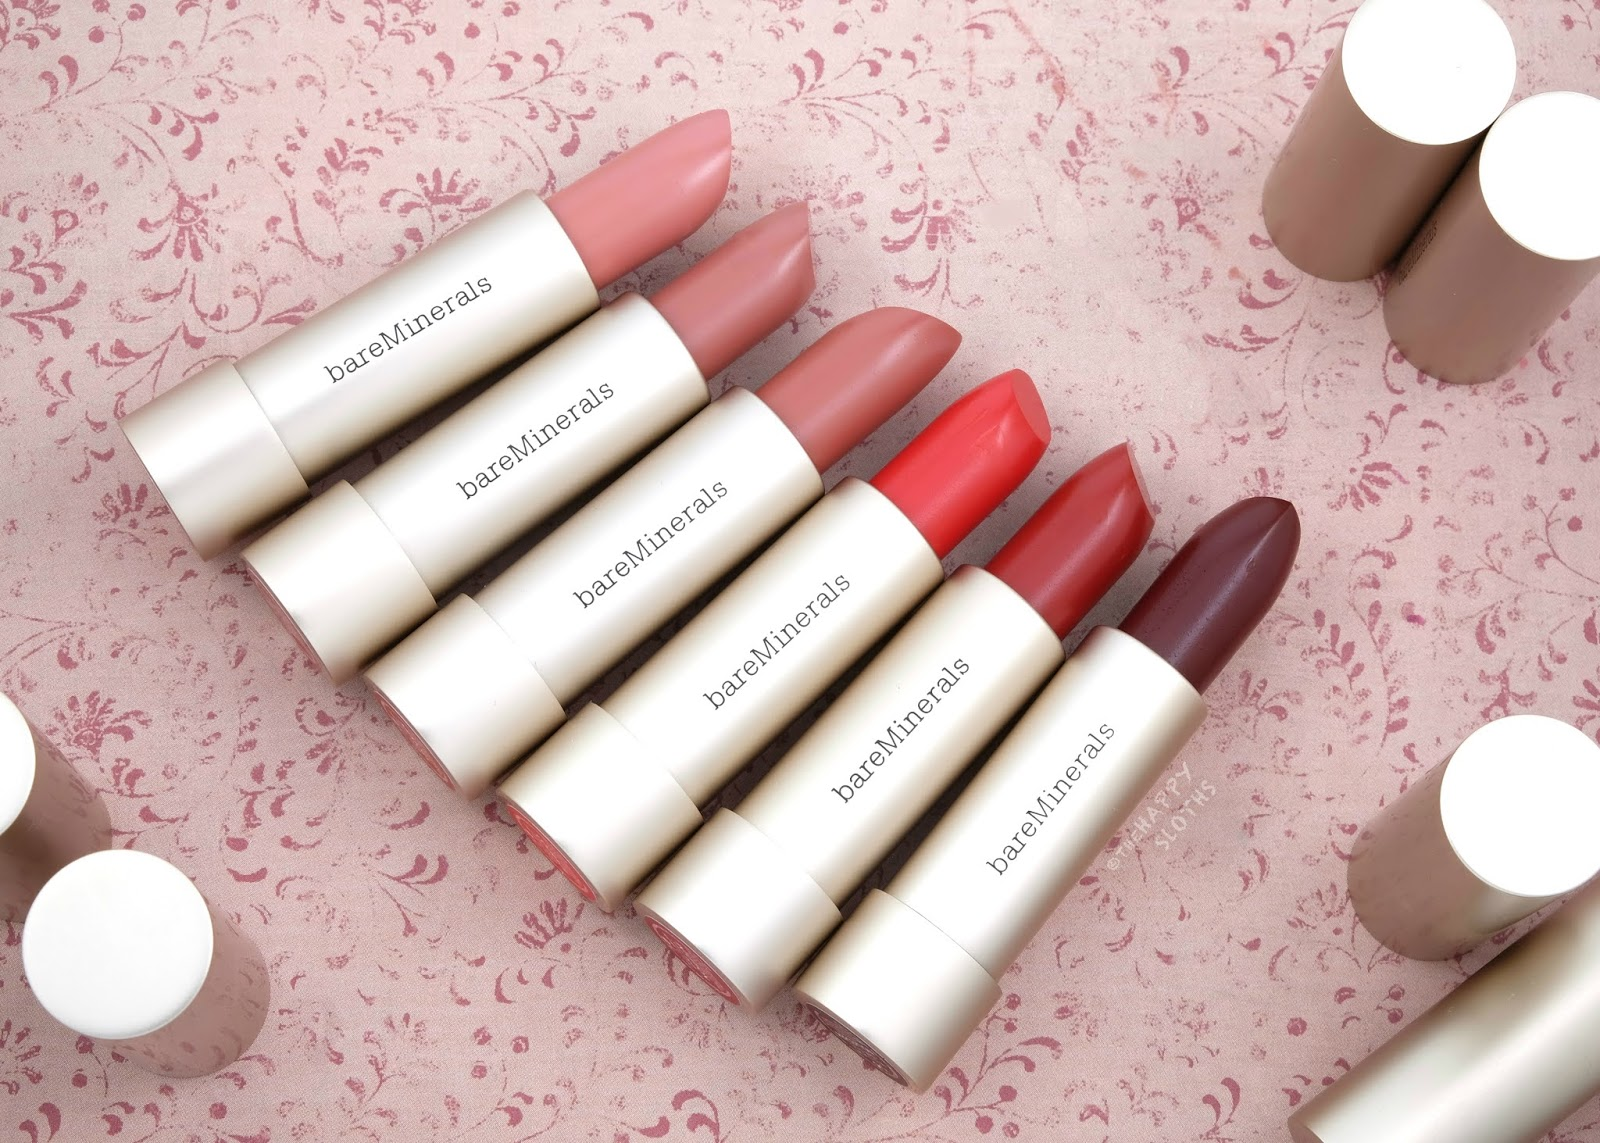 bareMinerals | Mineralist Hydra-Smoothing Lipstick: Review and Swatches